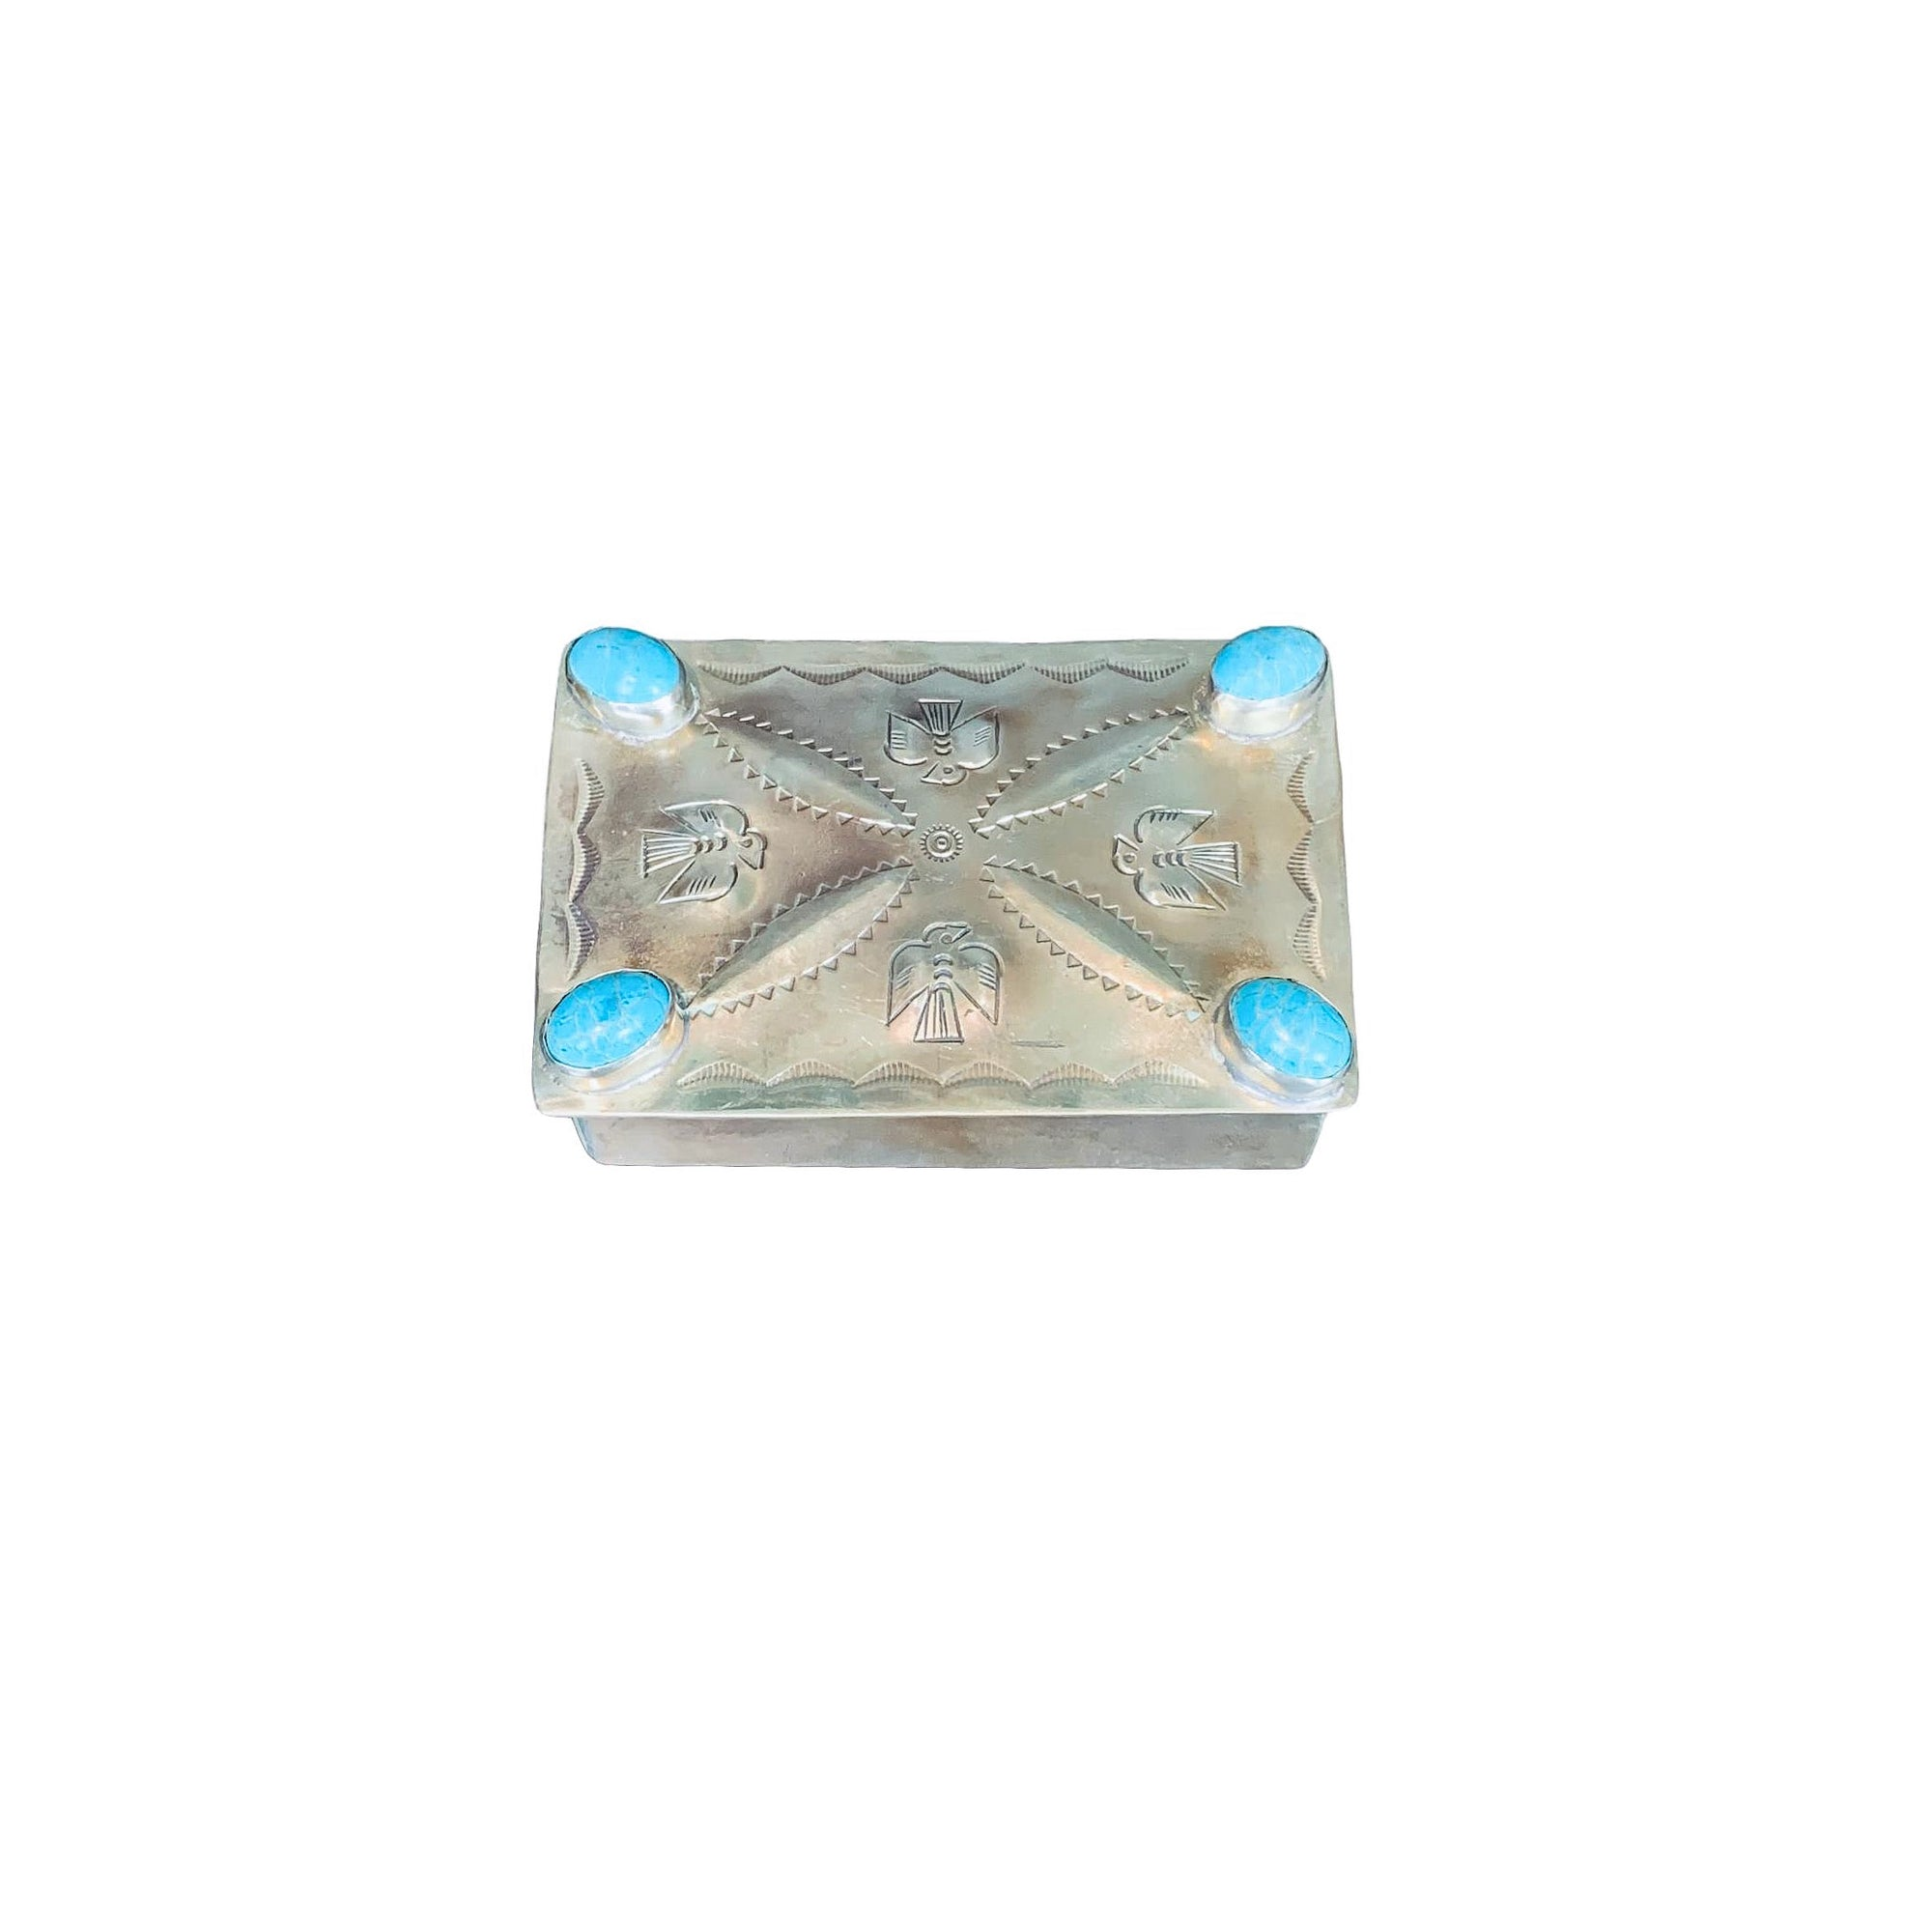 .Silver Hand-stamped Repousse Box with Turquoise - Small